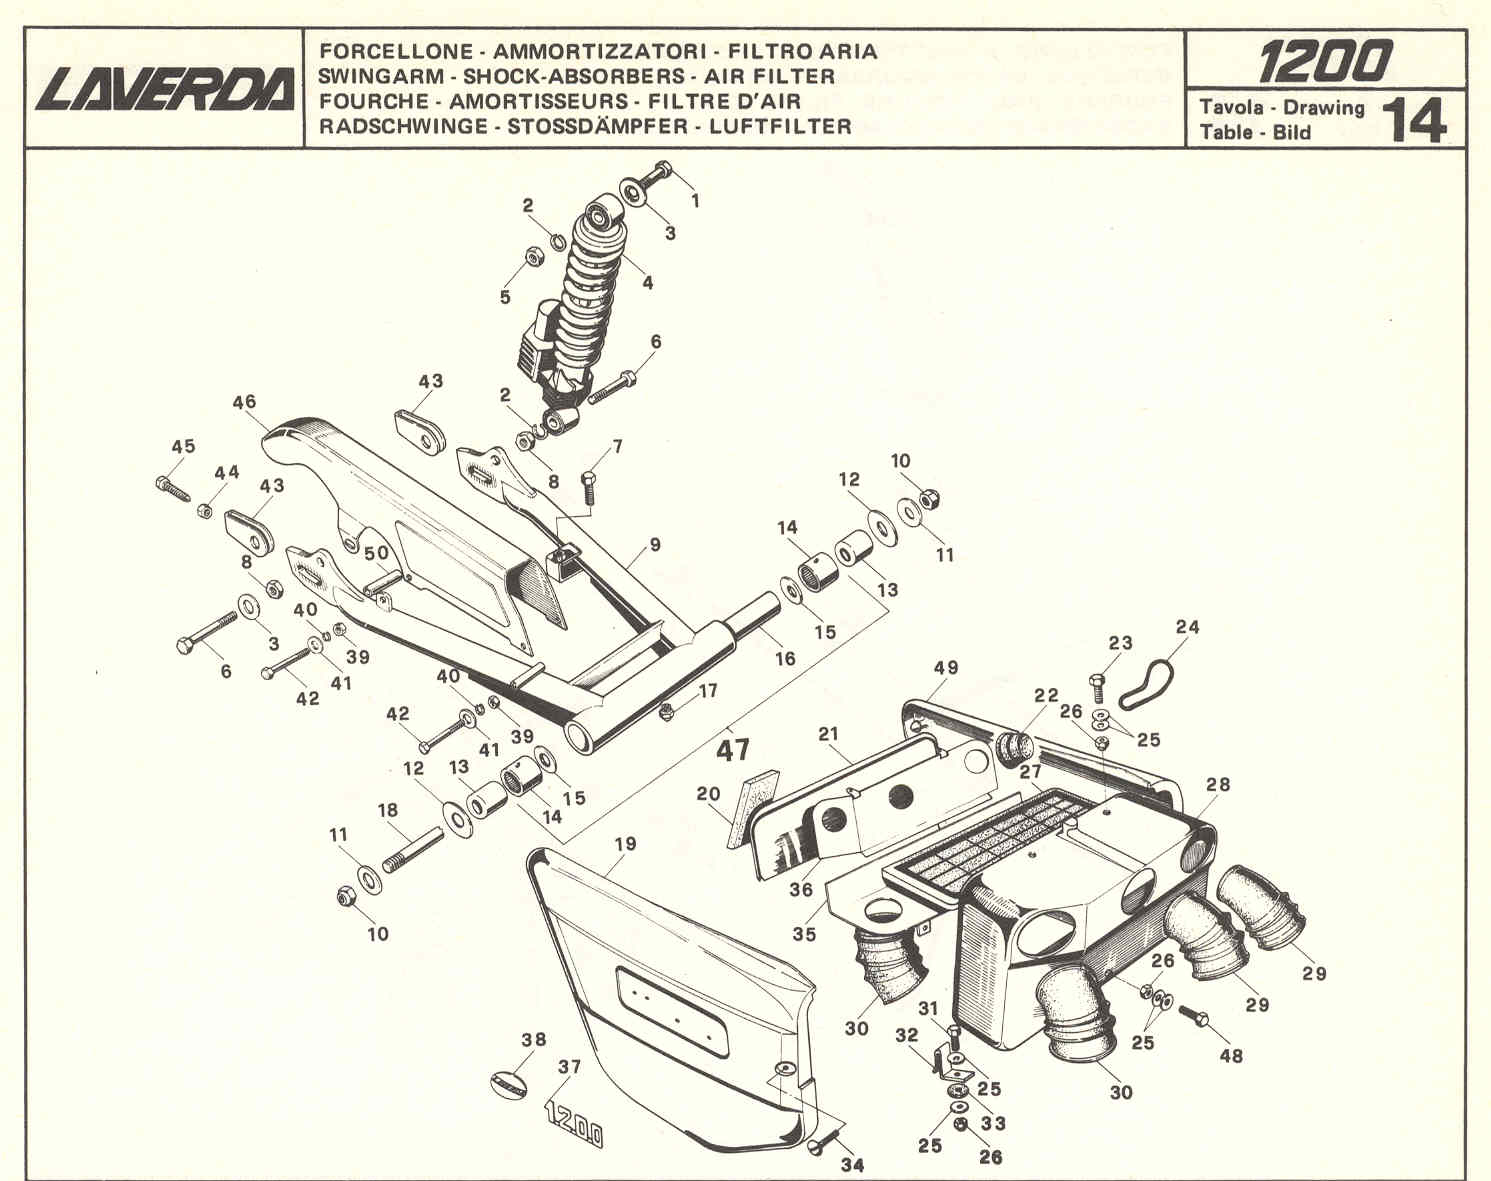 hight resolution of laverda 1000 1200 spare parts swingarm shock absorbers air filter